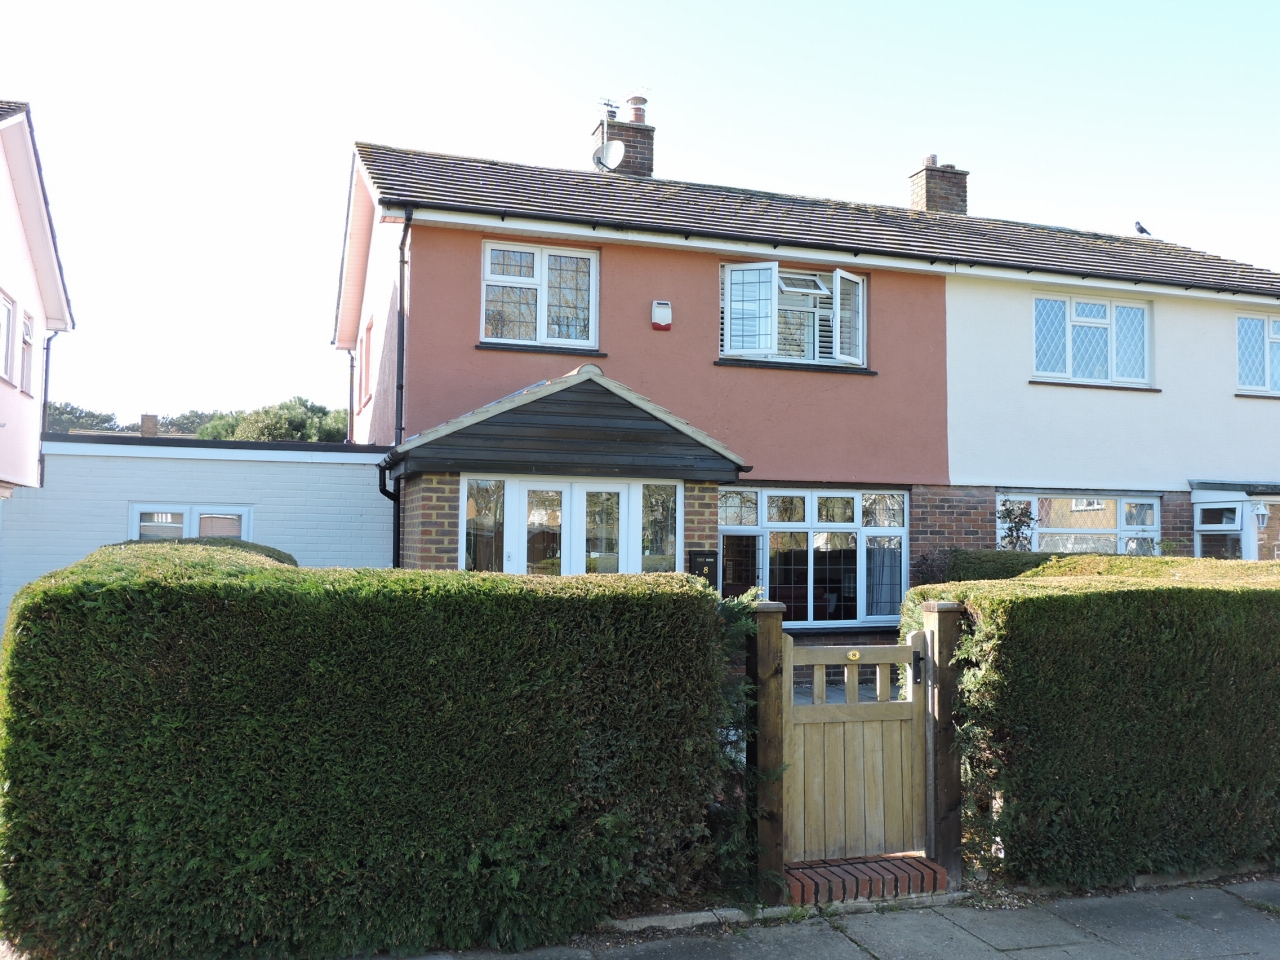 4 bedroom semi-detached house For Sale in Epsom - Photograph 1